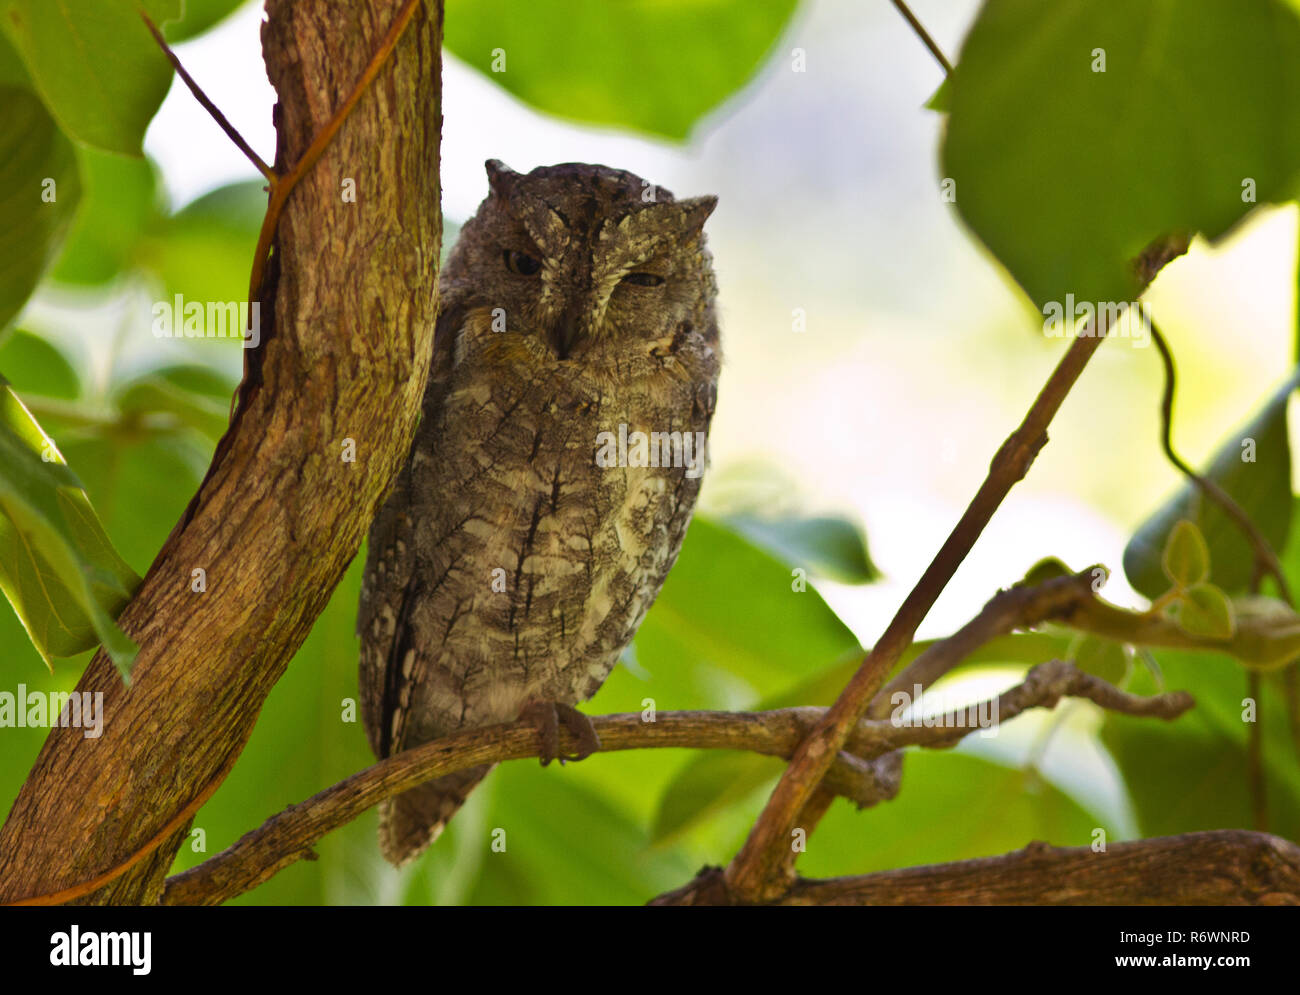 The African Scops Owl is a widespread resident that set up territory in woodlands and riverine and their distinctive metronome hoot is a signature sou - Stock Image